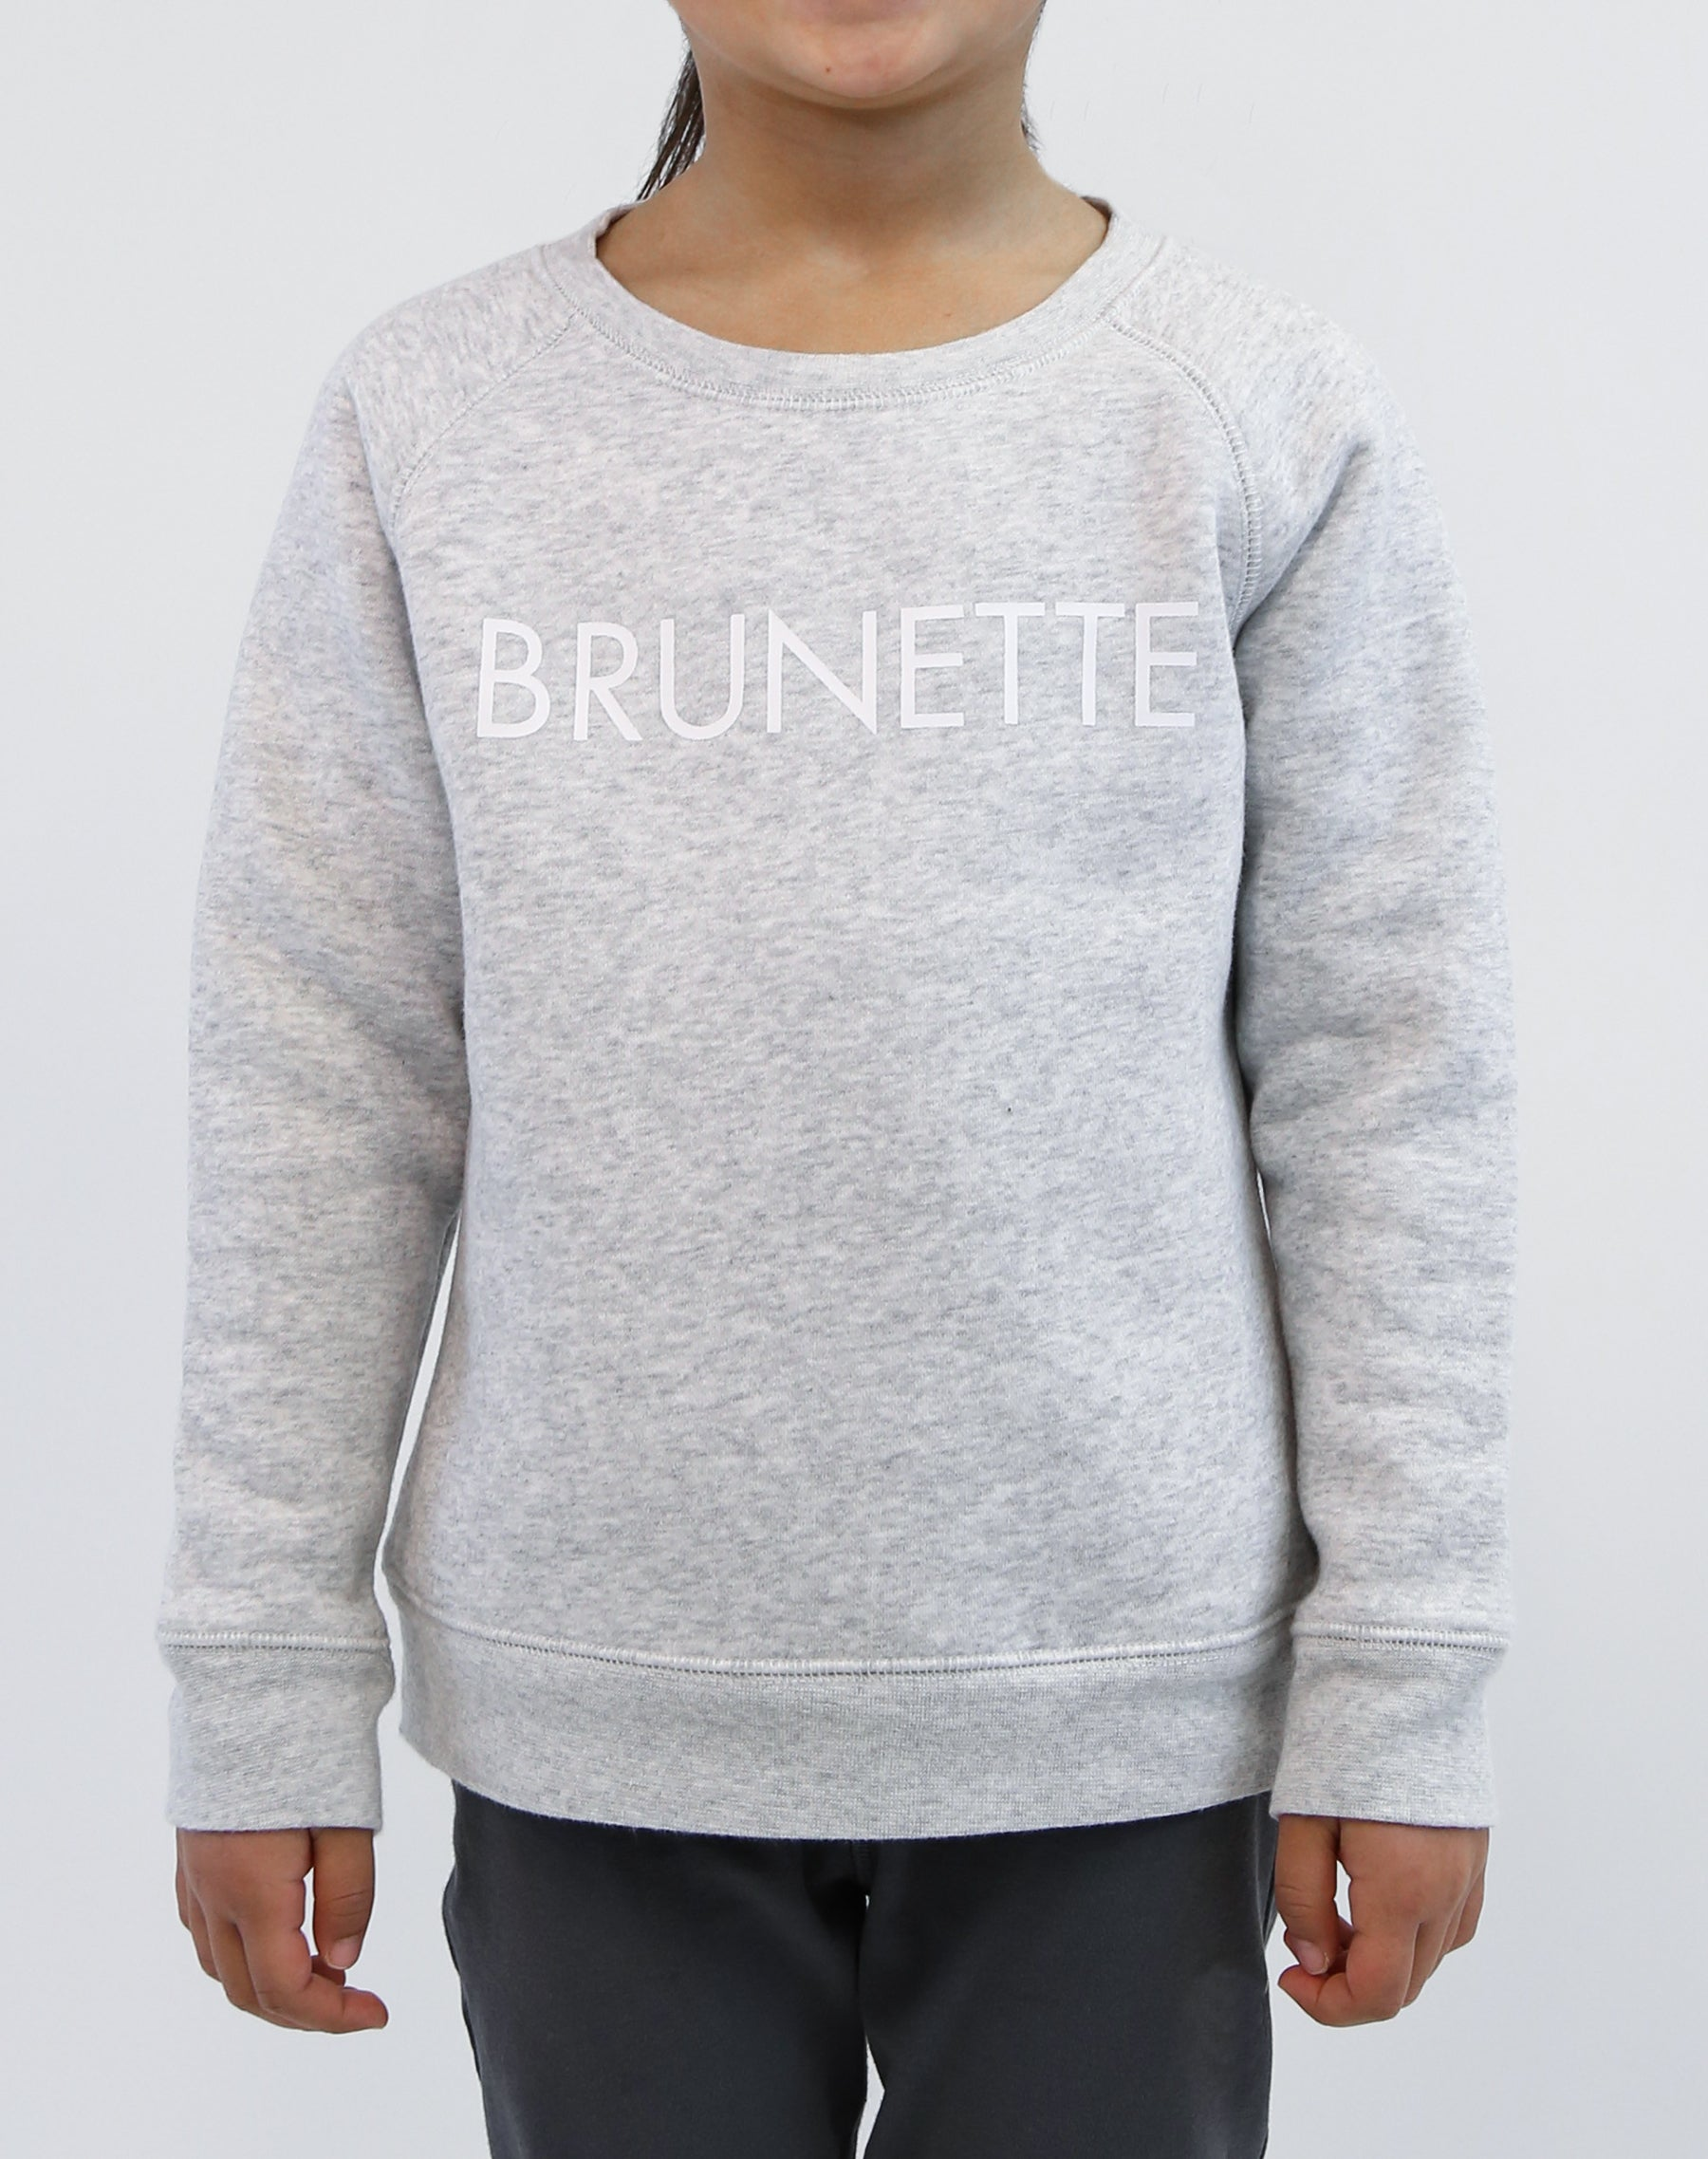 Photo of child wearing the Brunette classic crew neck sweatshirt in pebble grey by Brunette the Label.